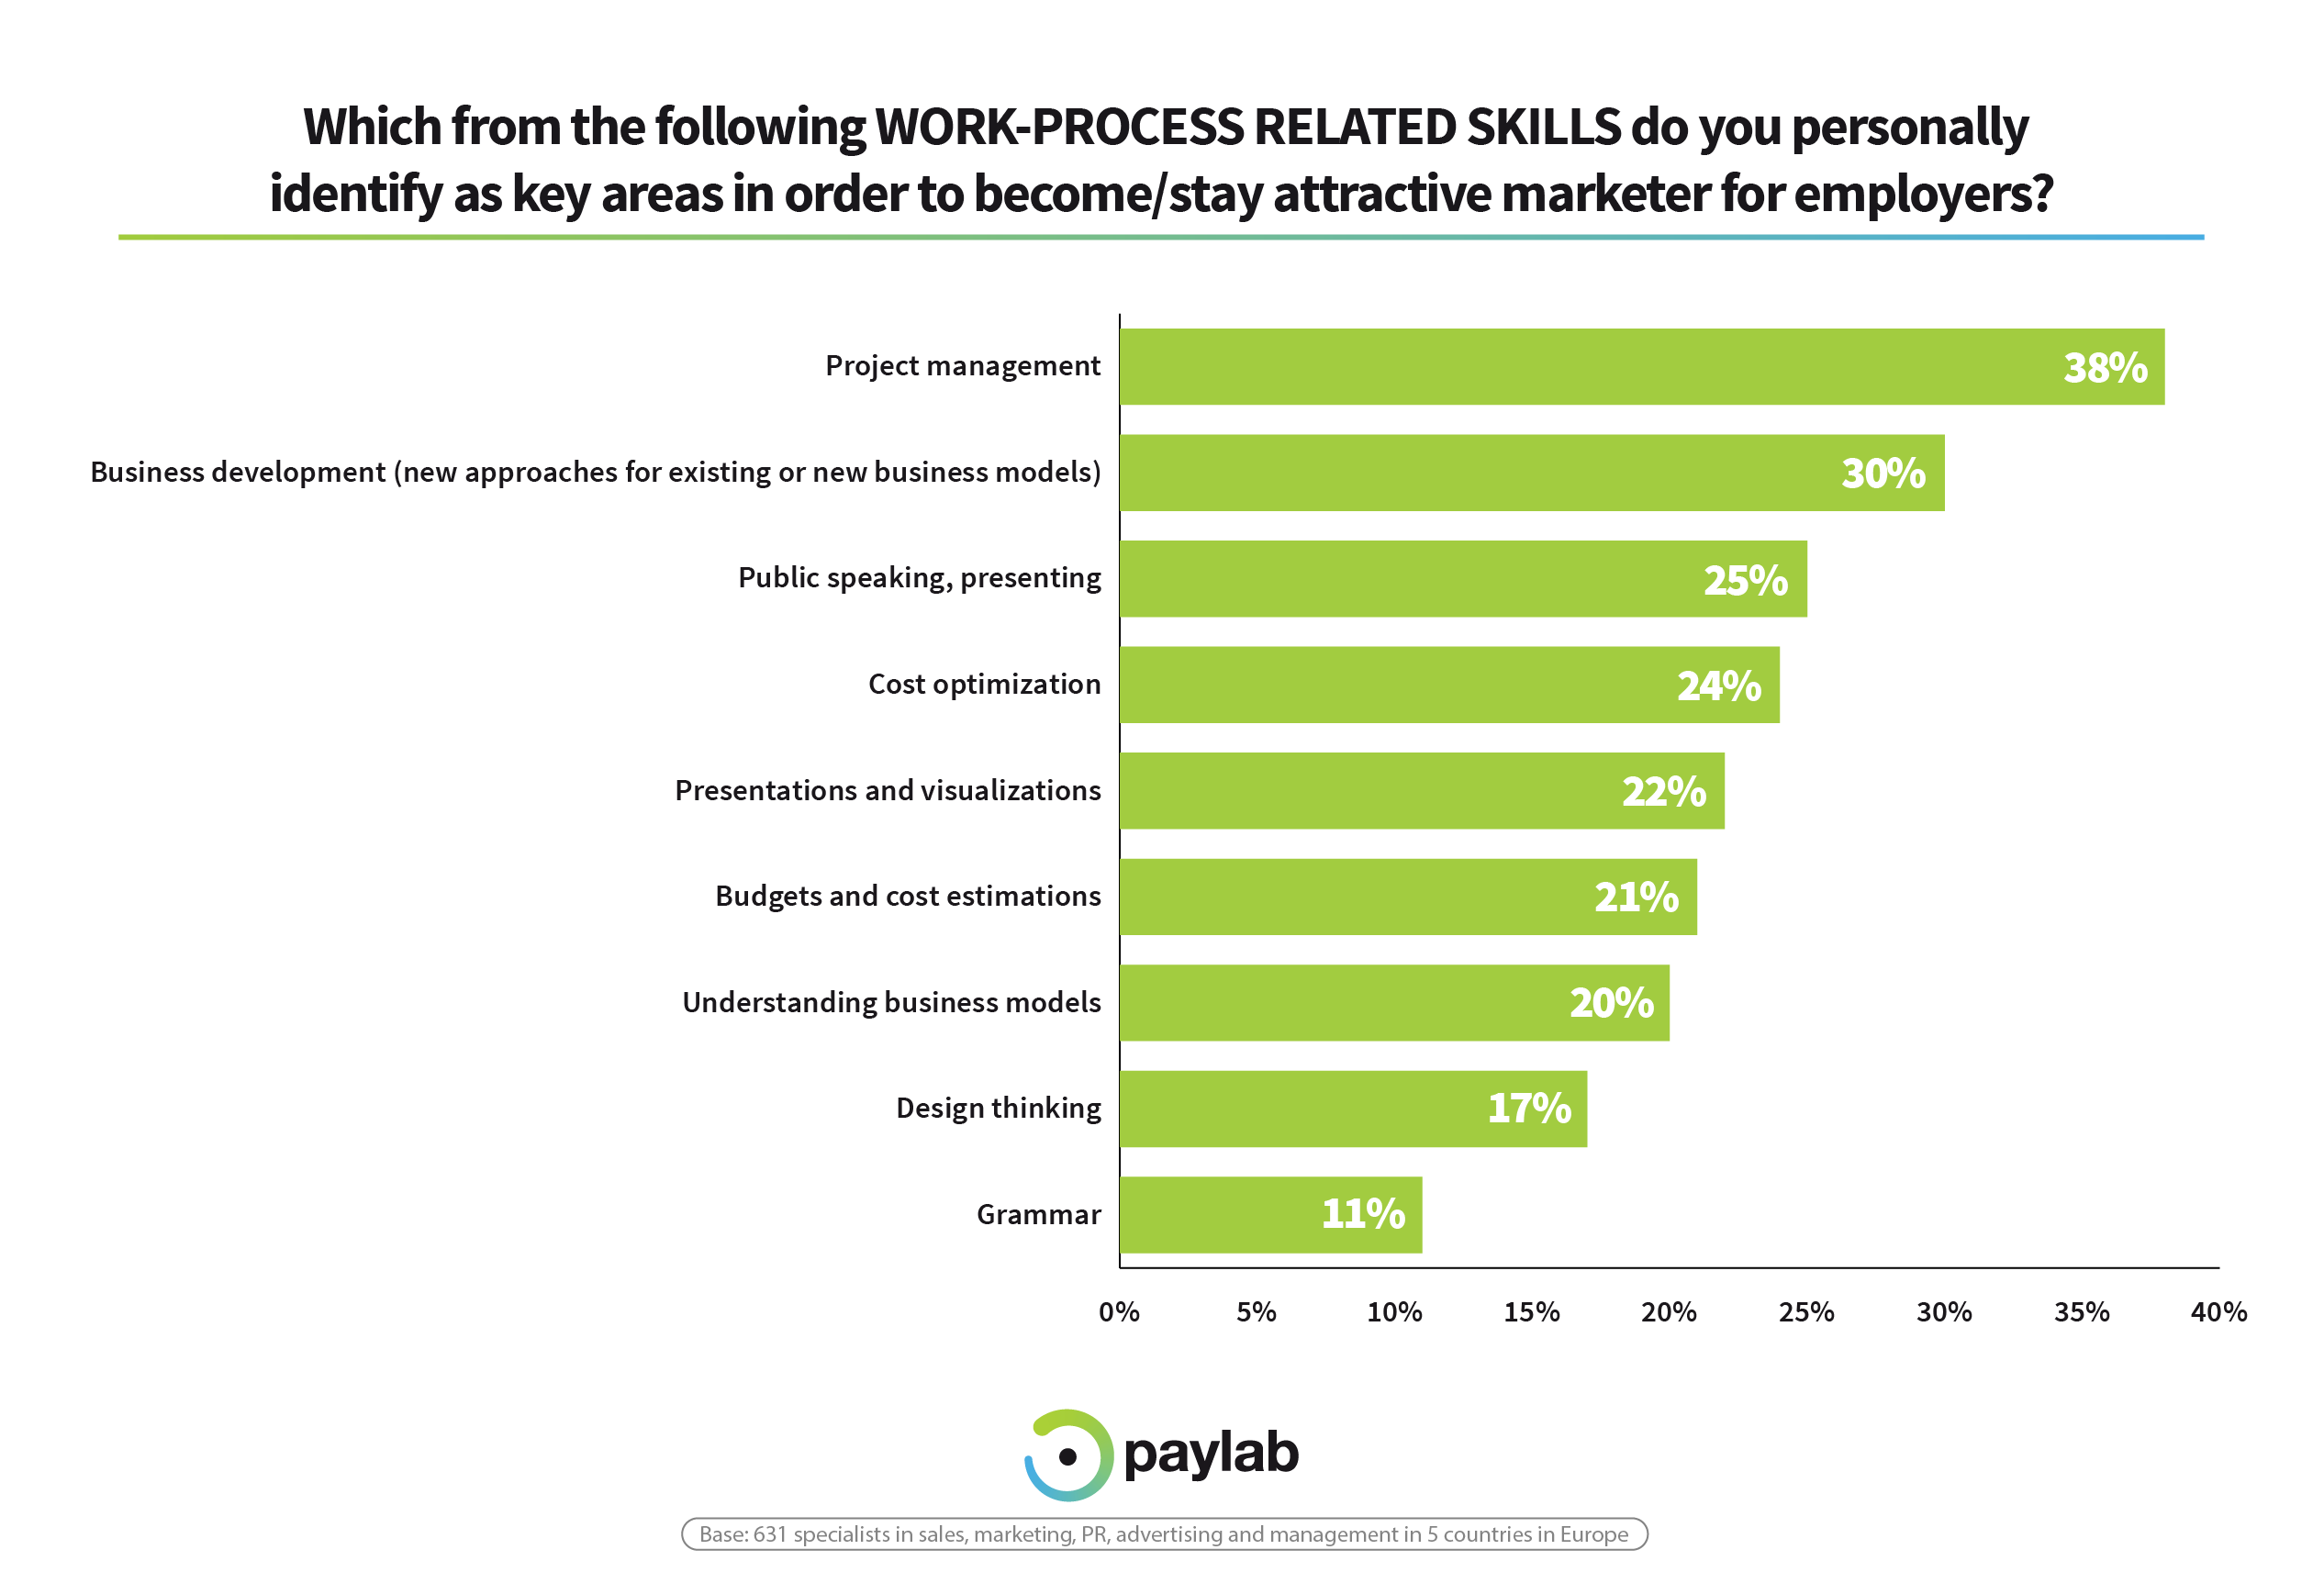 skills work-related process future mareketers survey Paylab